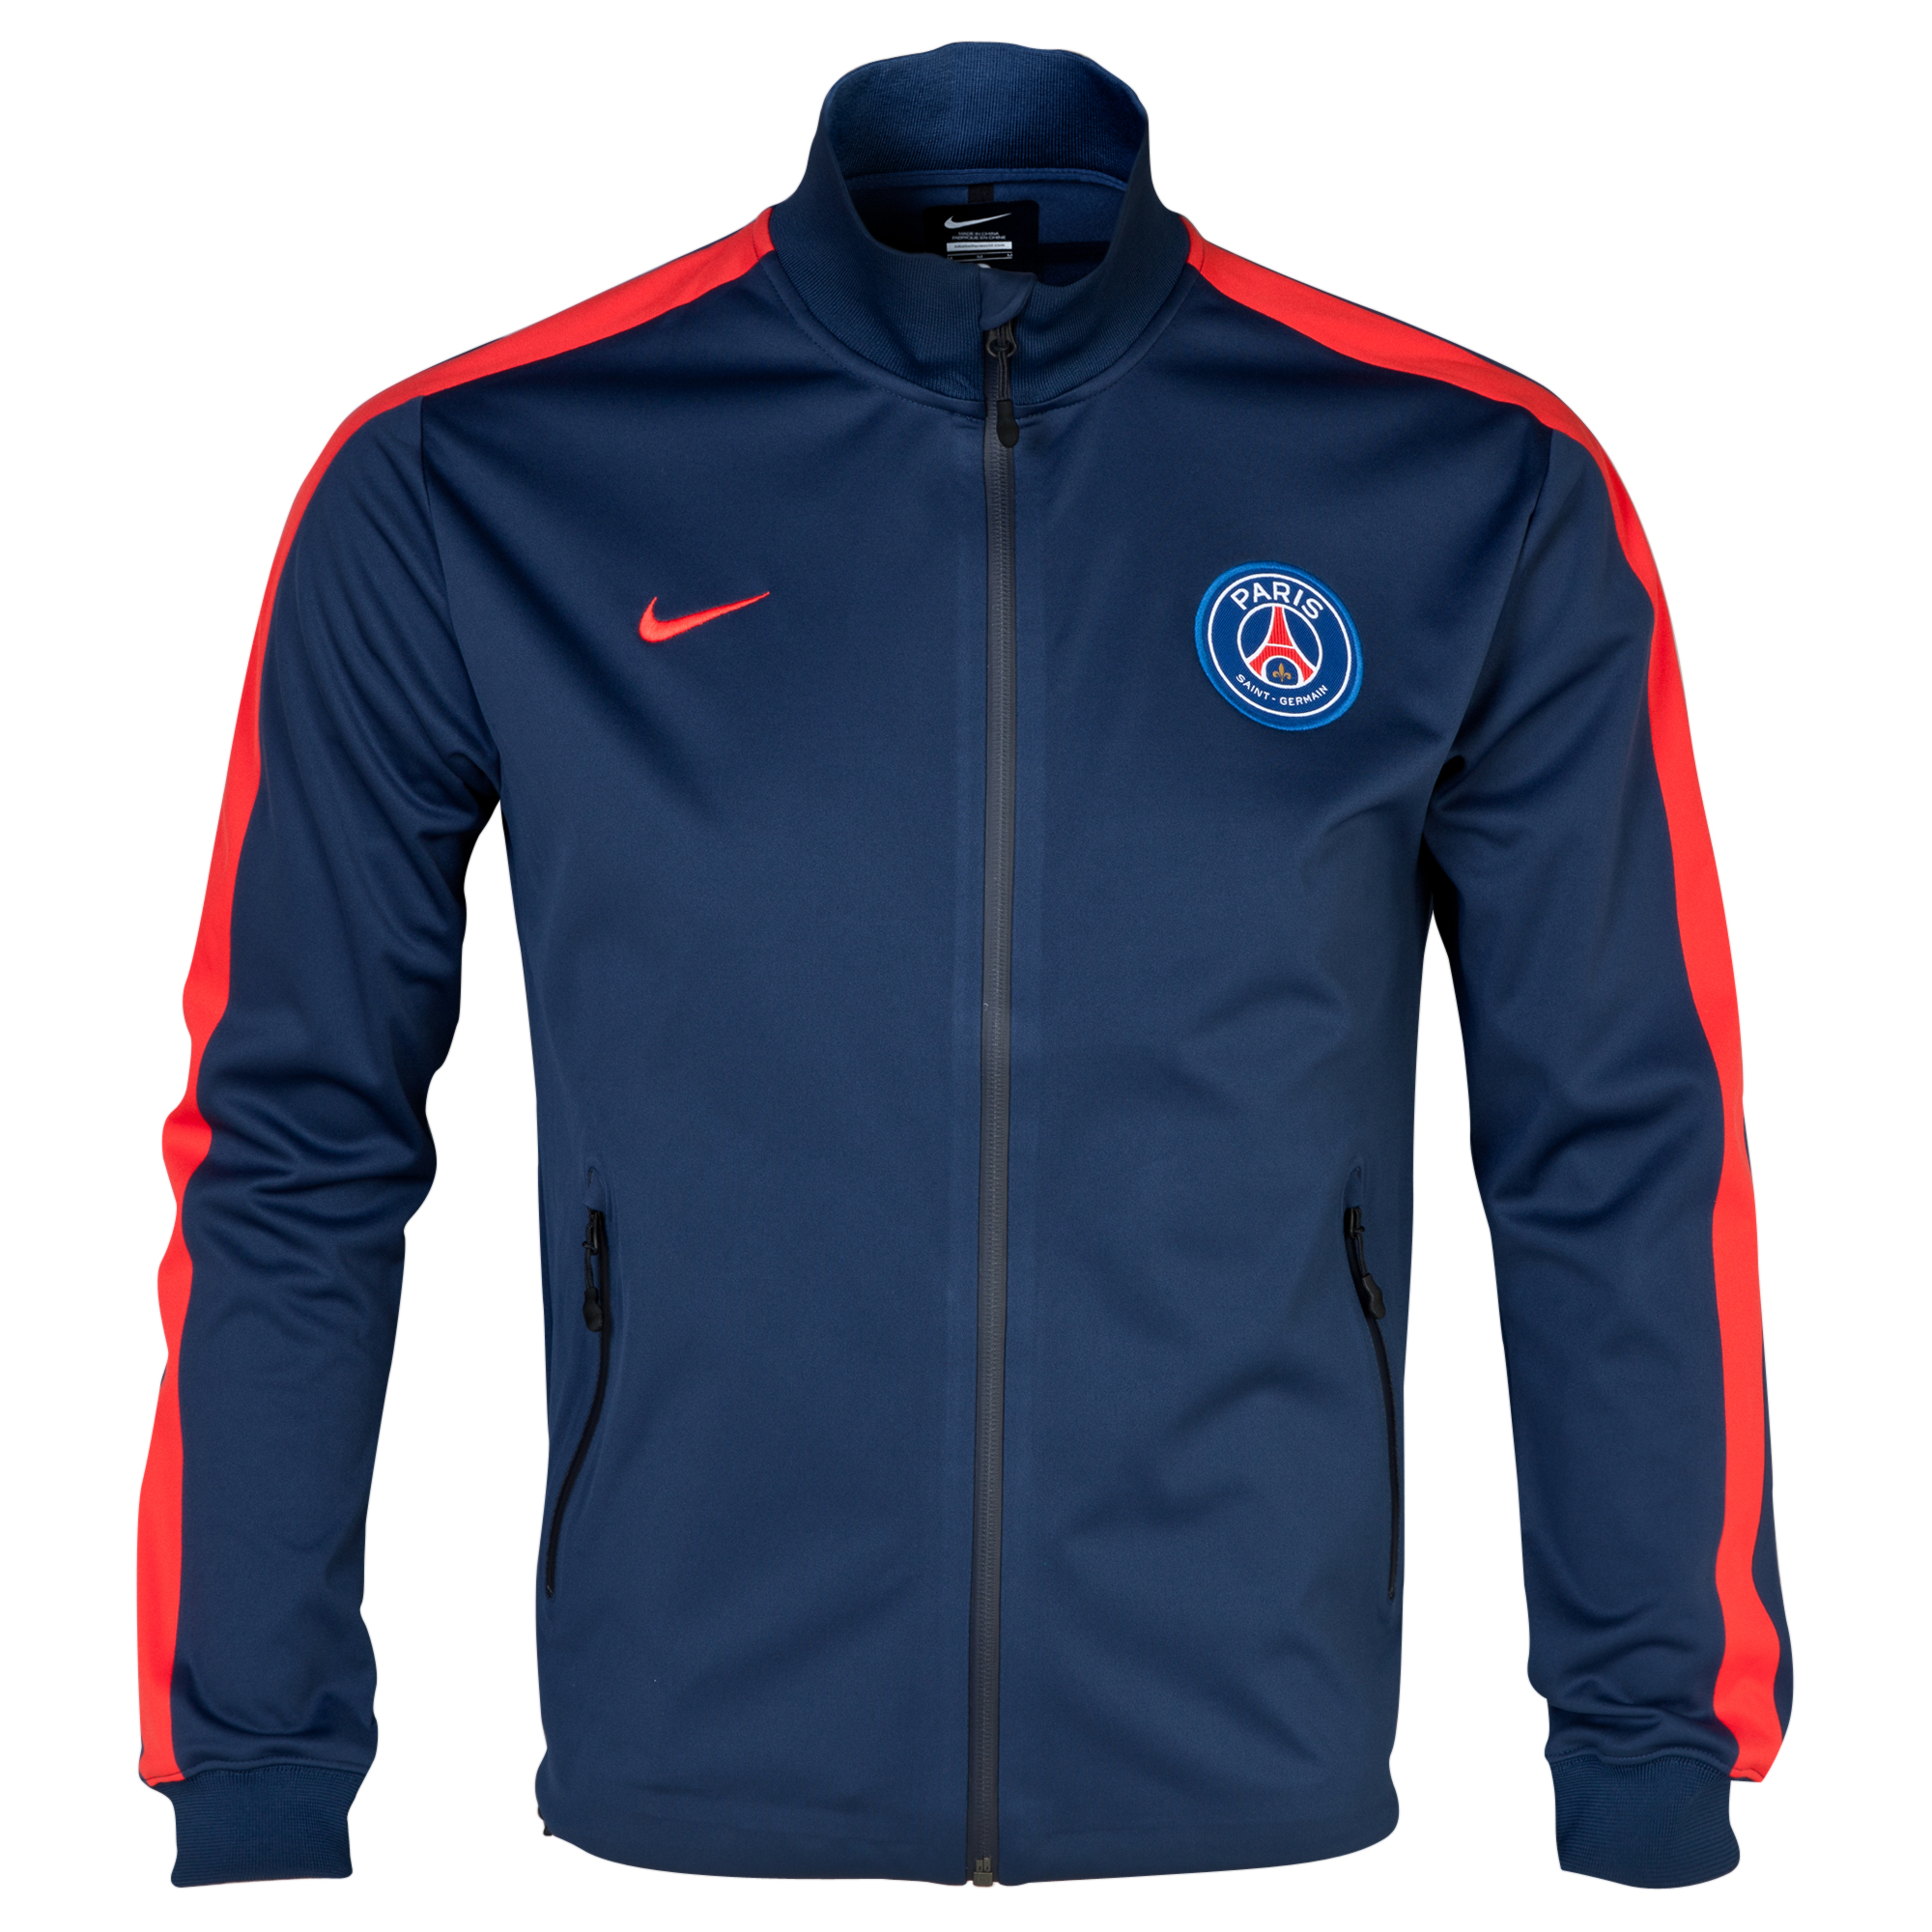 Paris Saint-Germain Authentic UEFA Champions League N98 Jacket Navy